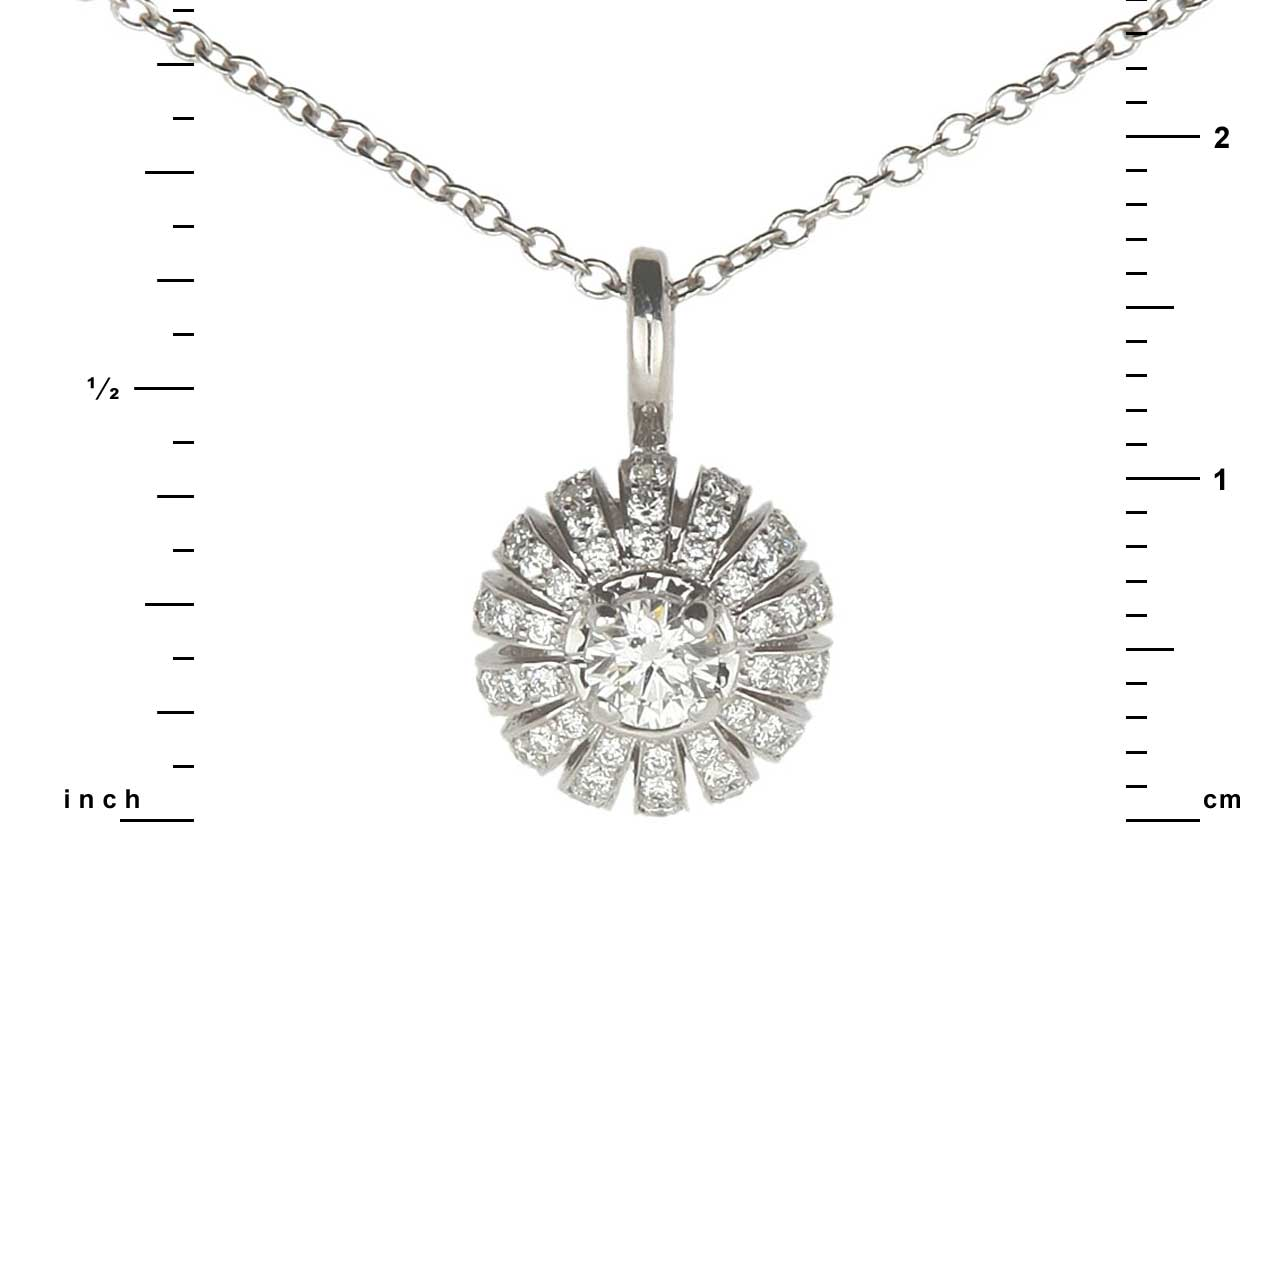 Certified diamond pendant 1